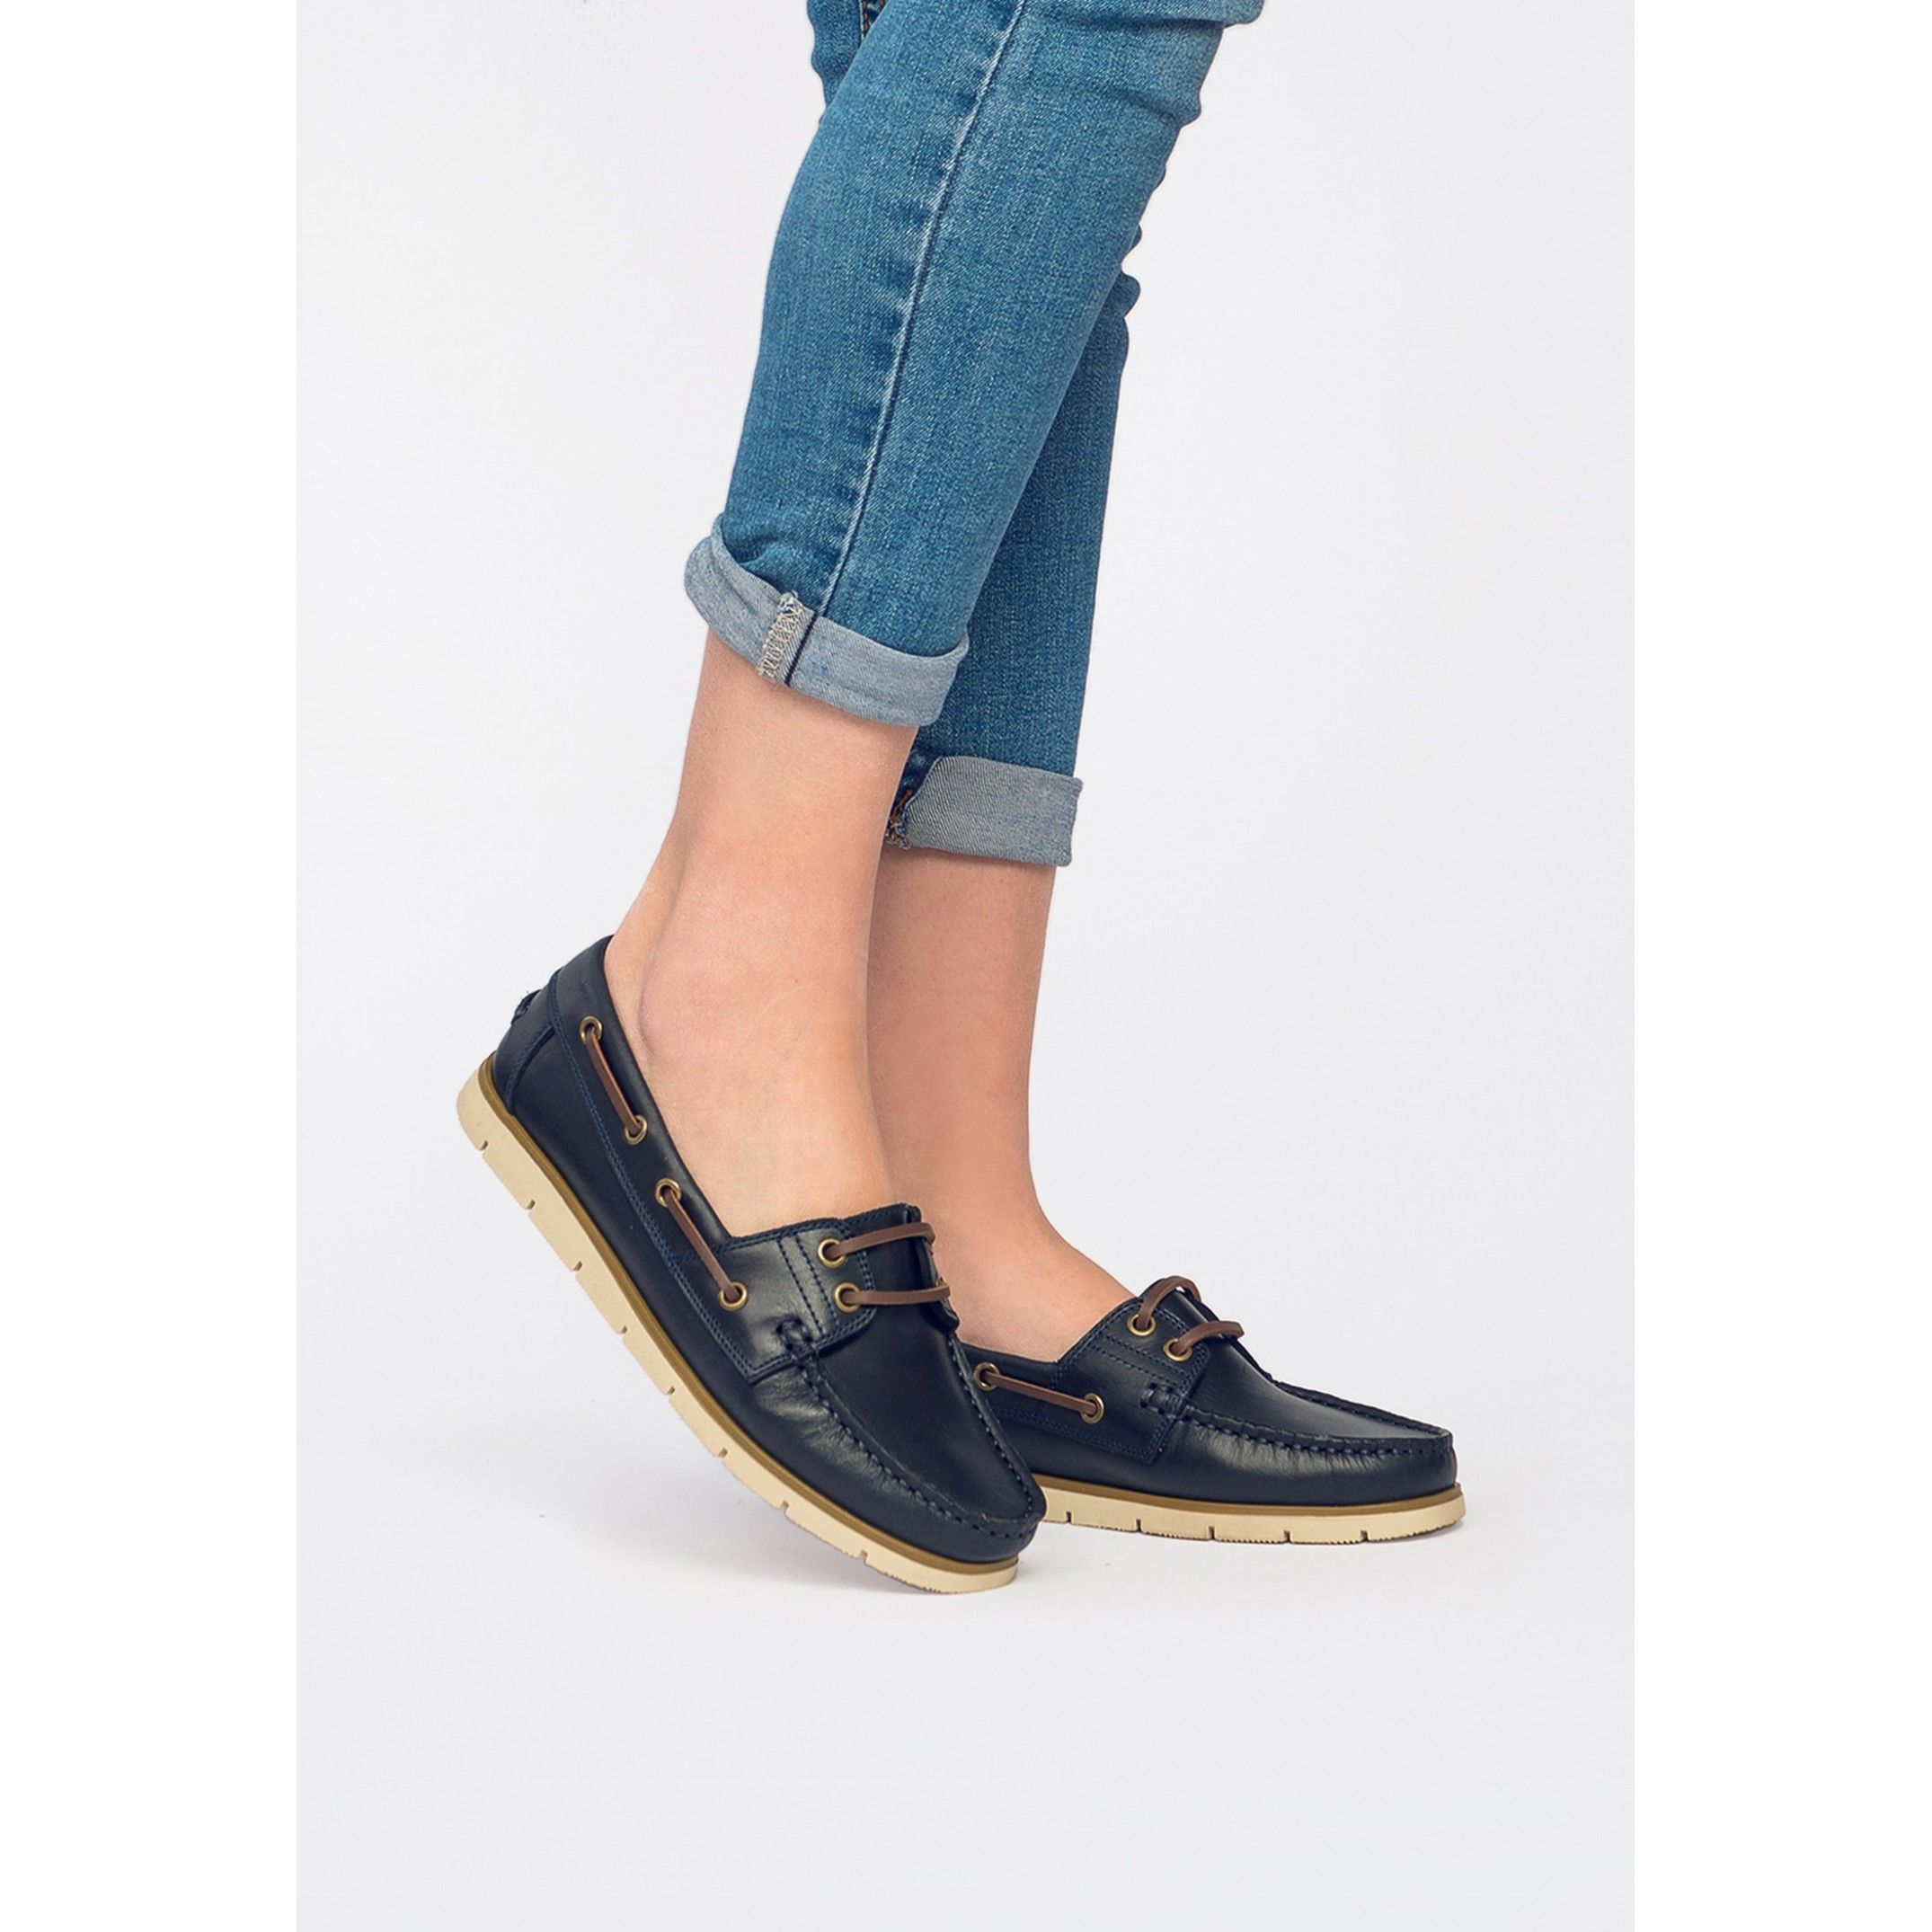 Leather Boat Shoes for Women